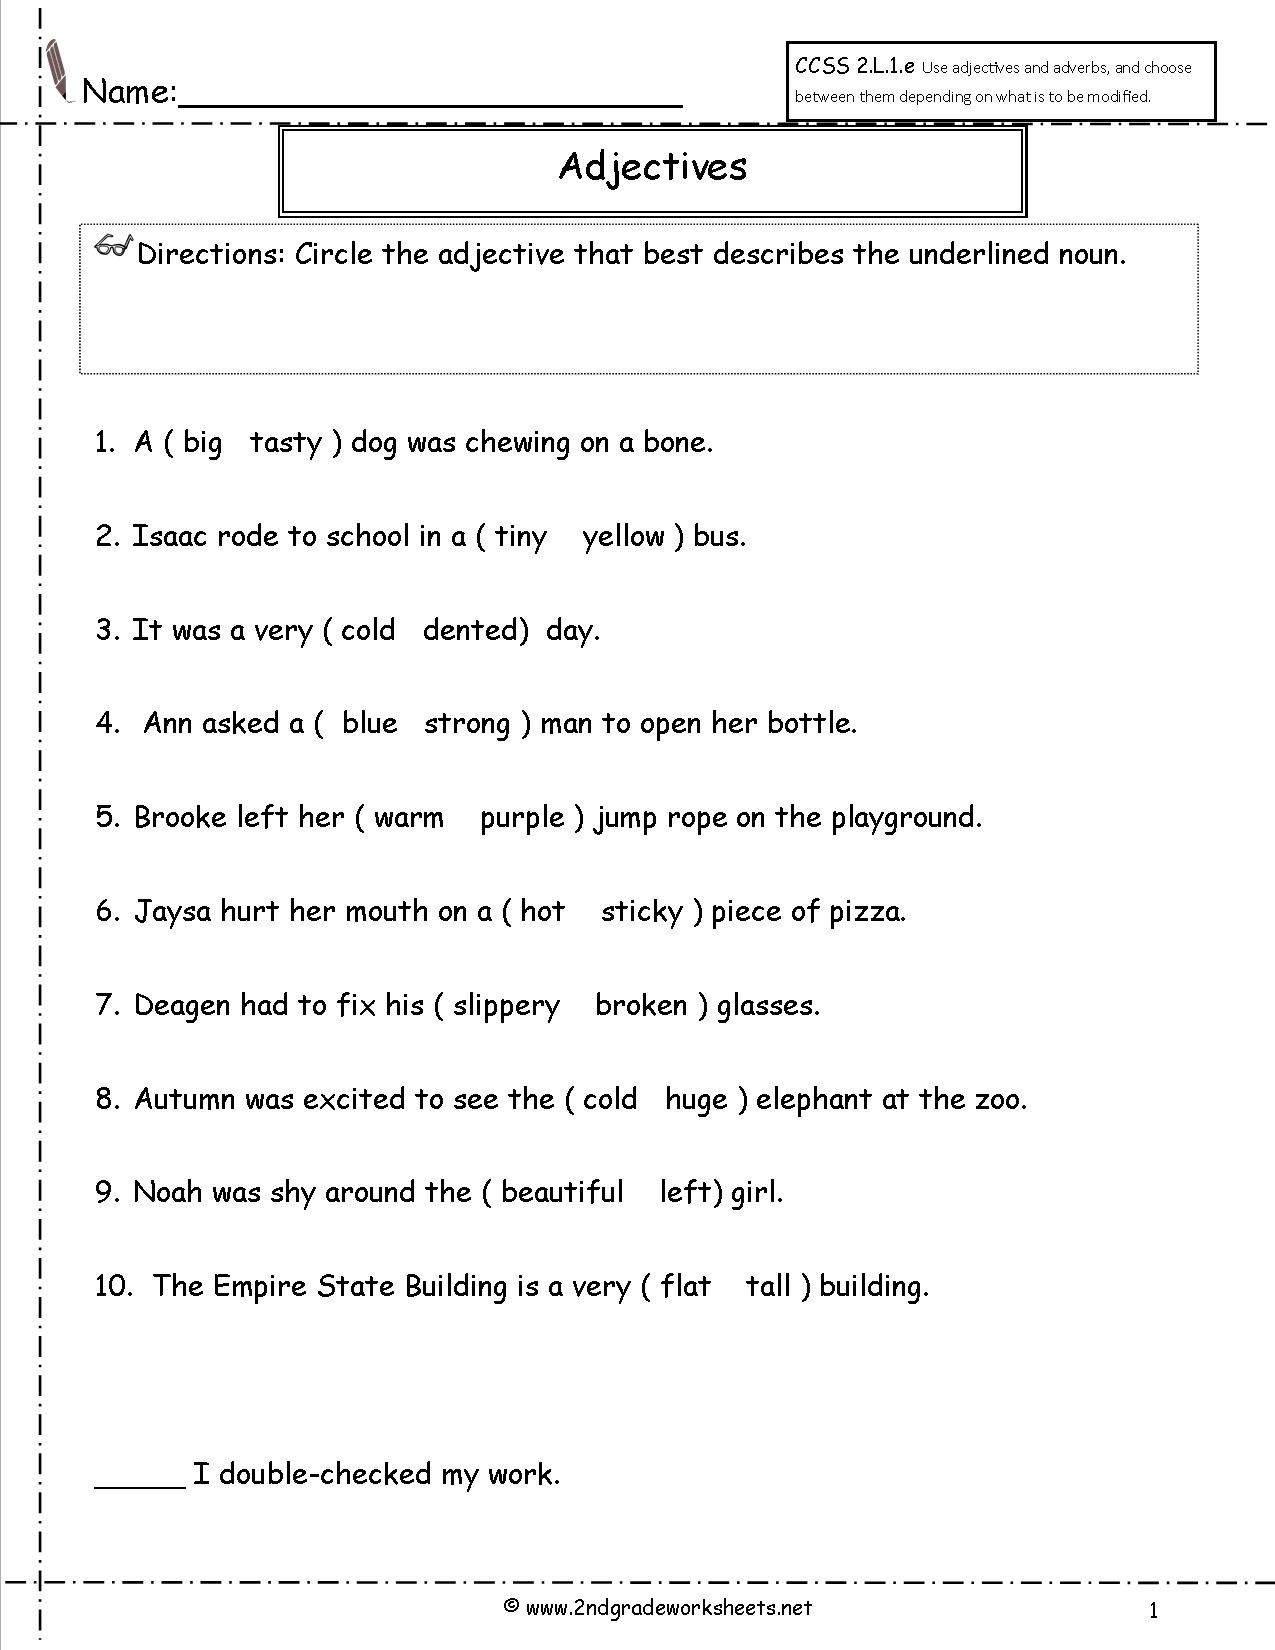 Free Printable Adjective Worksheets Free Using Adjectives and Adverbs Worksheets